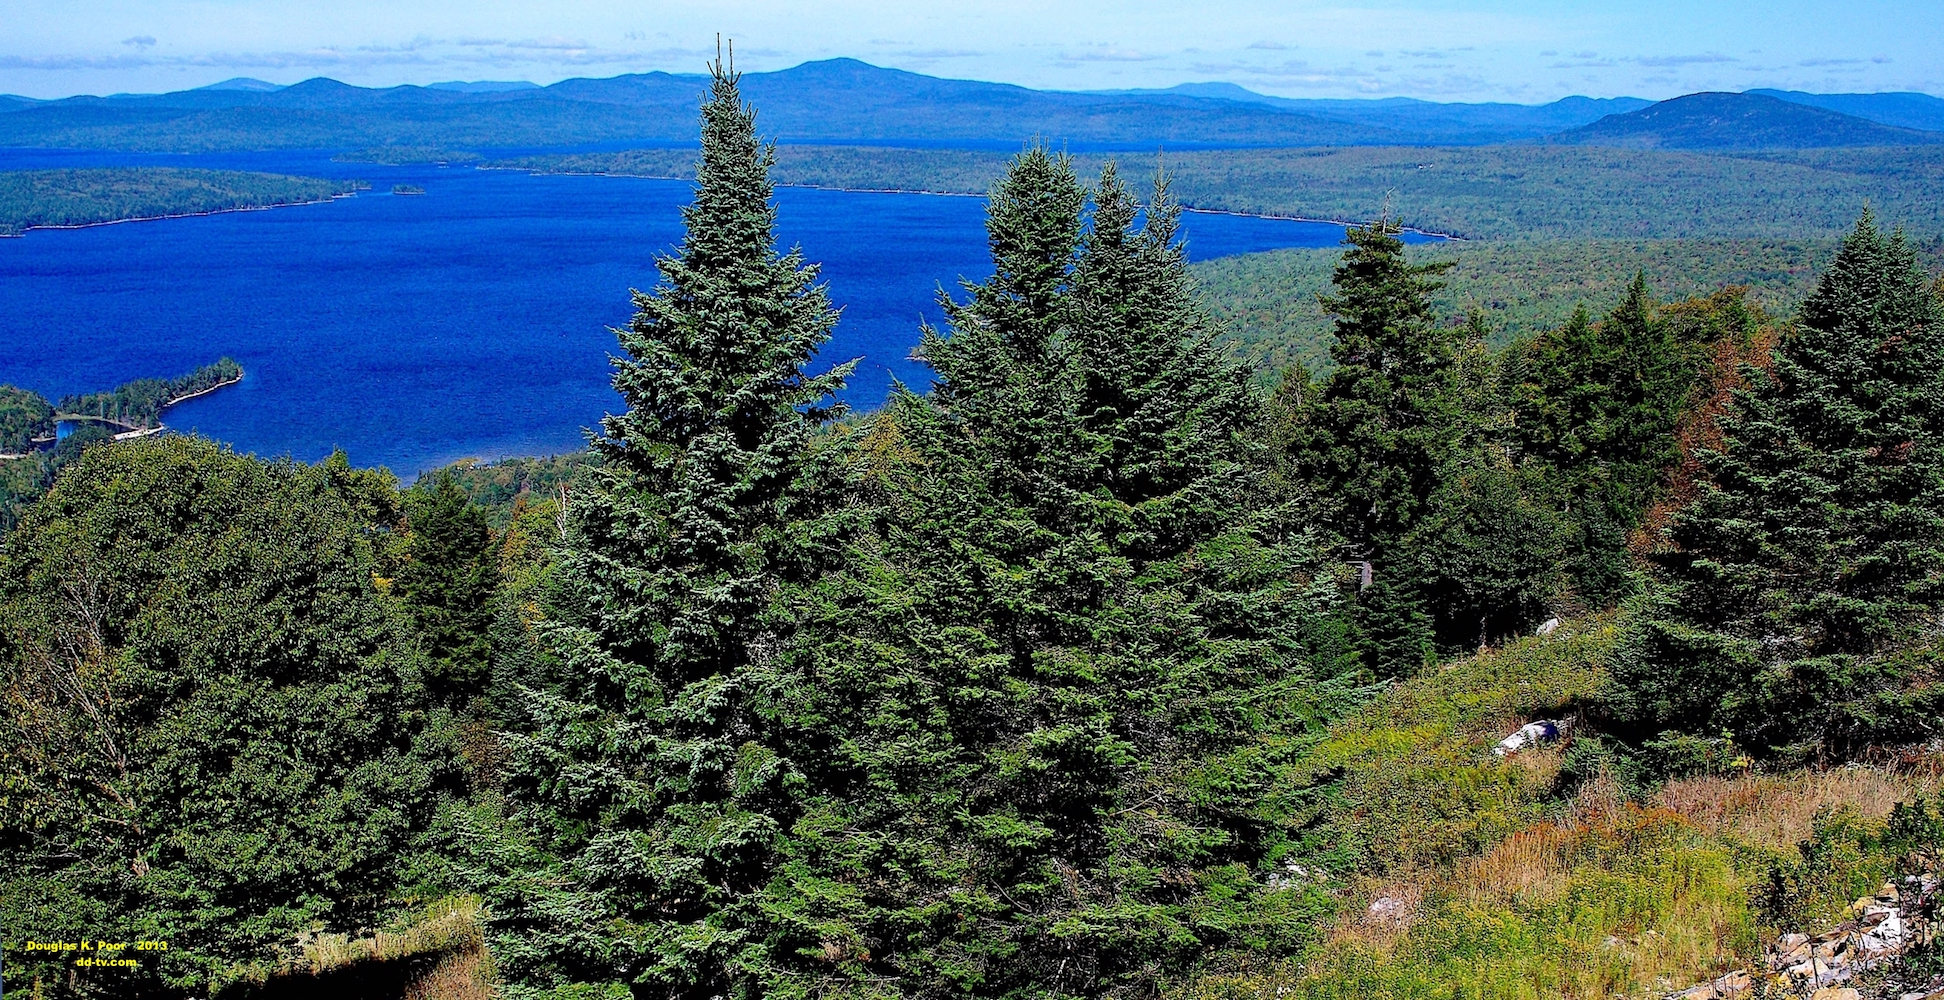 =========================================================================================================================================RANGELY-OVERLOOK-WITH-FIR-TREES